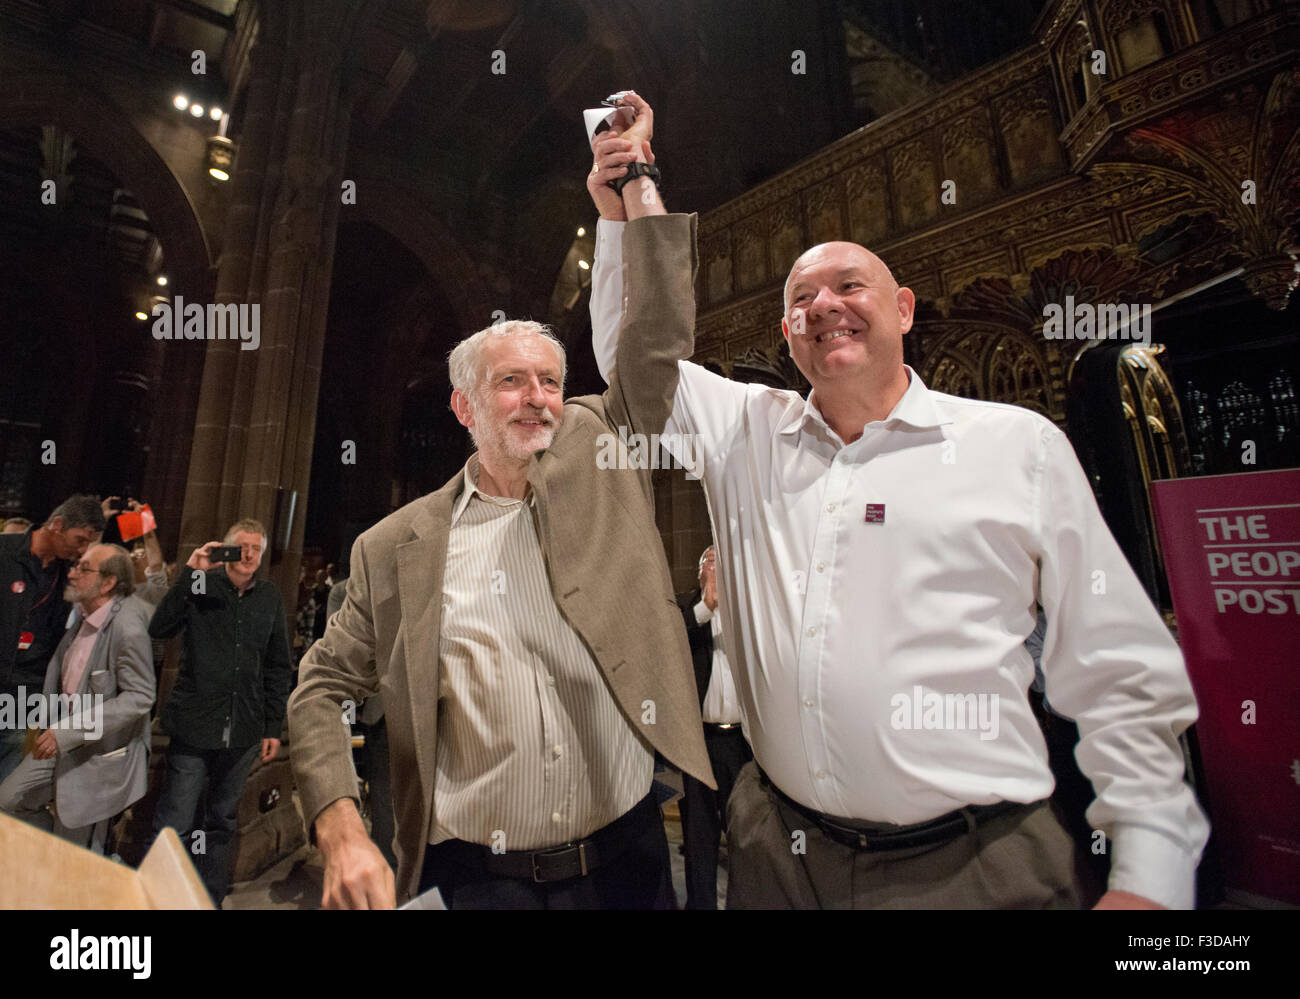 Manchester, UK. 5th October 2015. Dave Ward, General Secretary of the Communication Workers Union (CWU) (right), - Stock Image